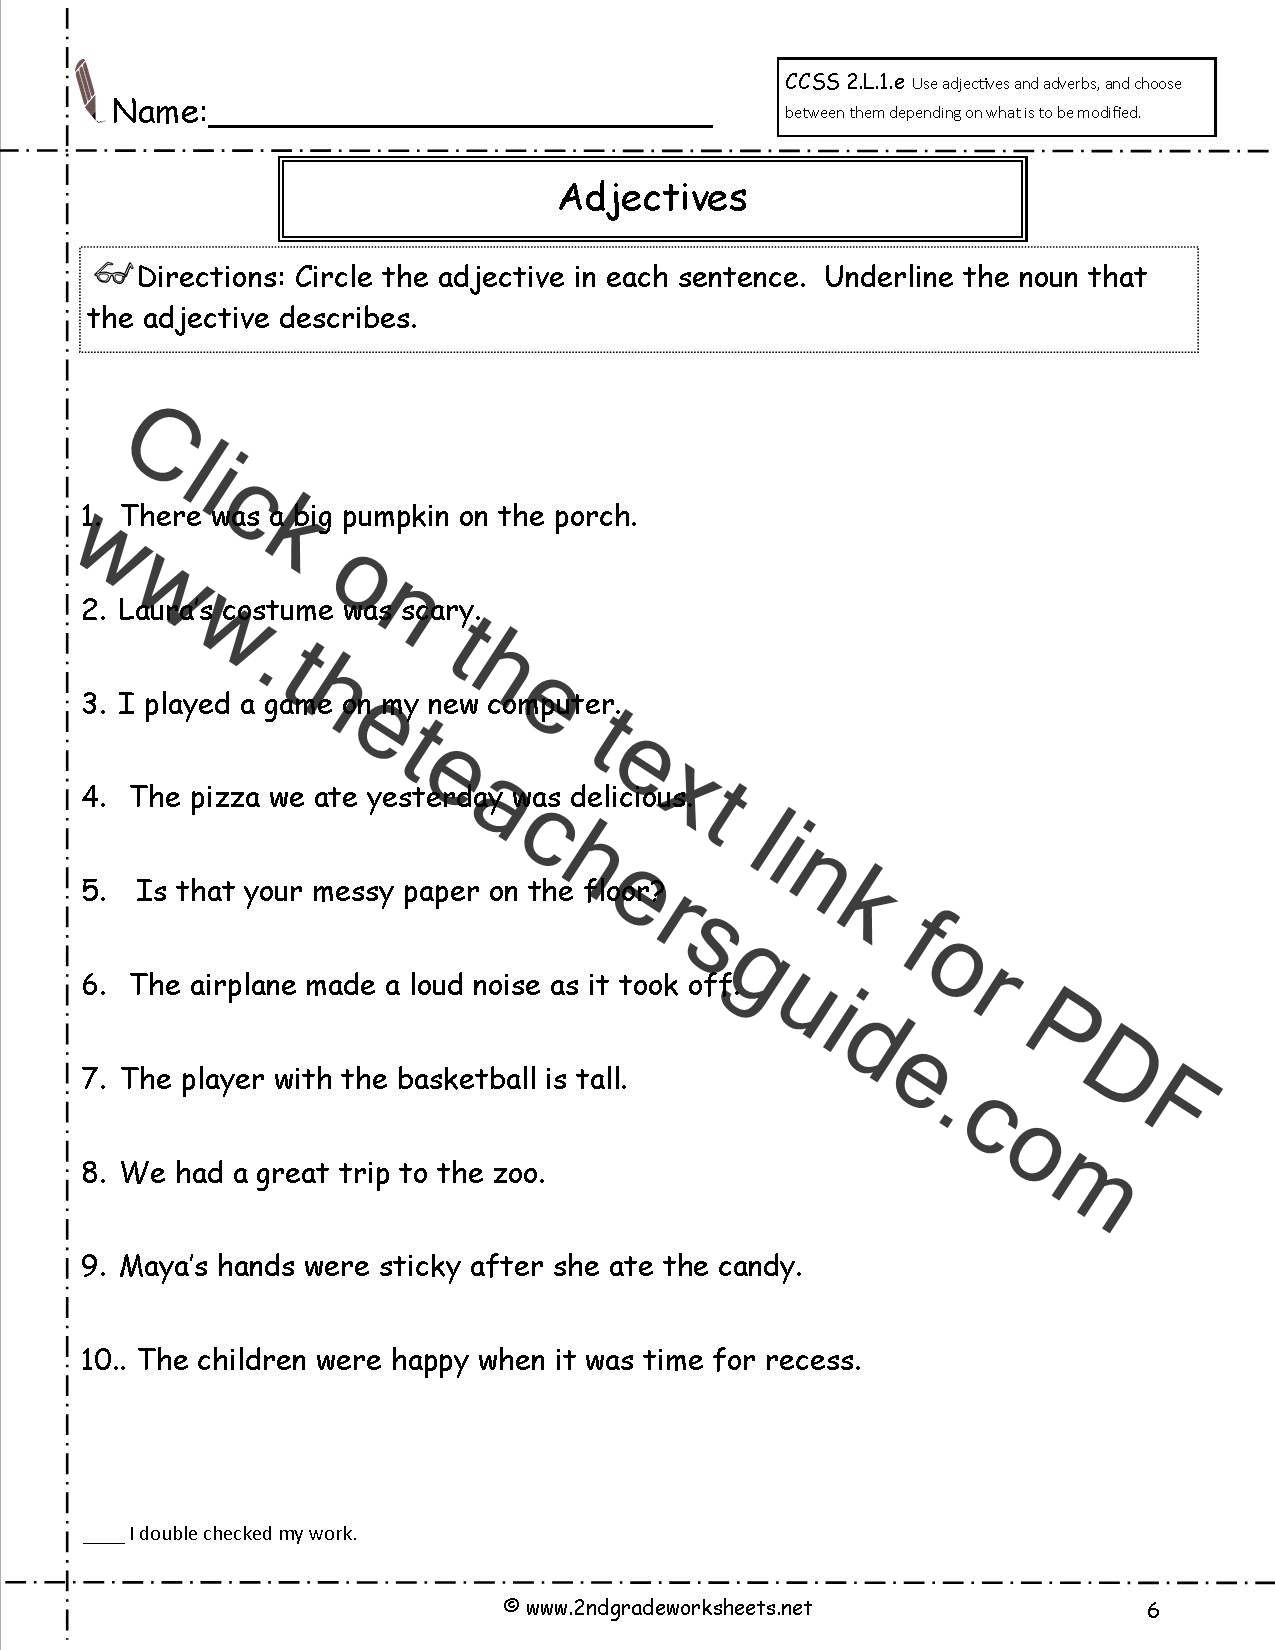 Free Using Adjectives and Adverbs Worksheets – Adjectives Worksheets